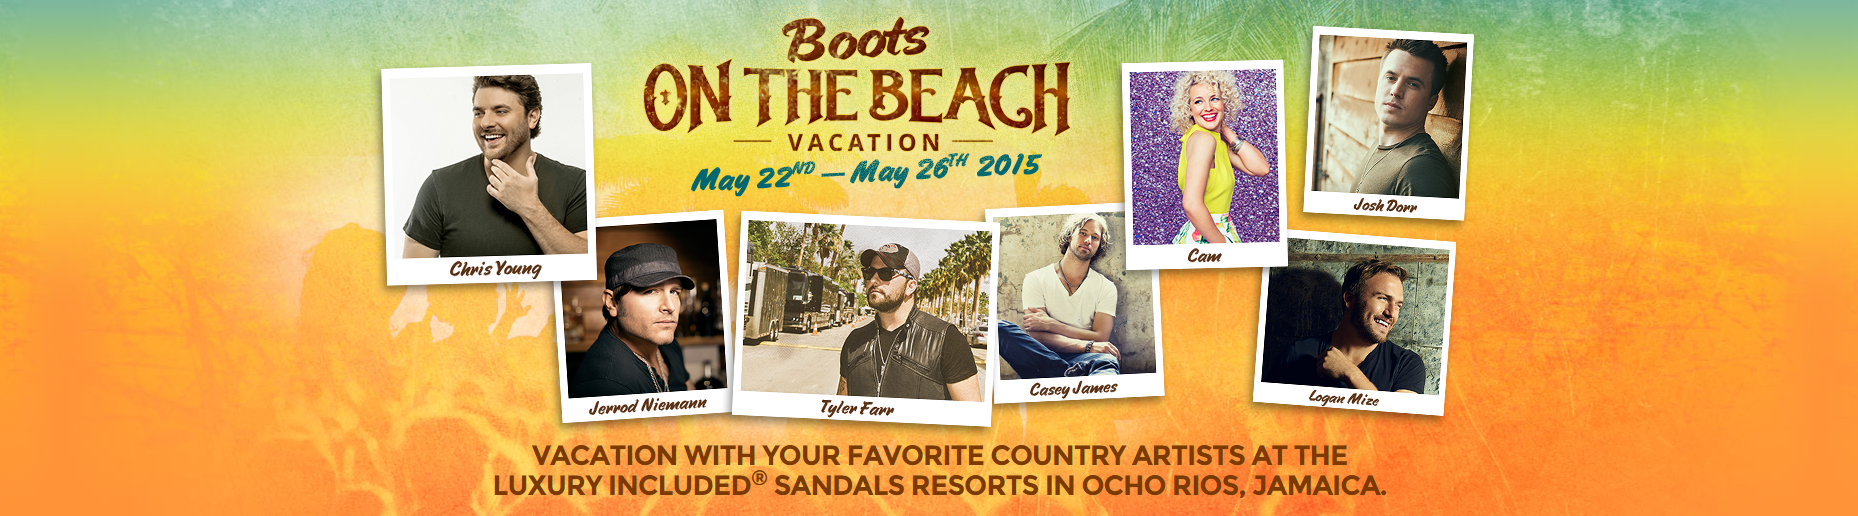 dave smith giveaway boots on the beach giveaway dave smith blog 3423